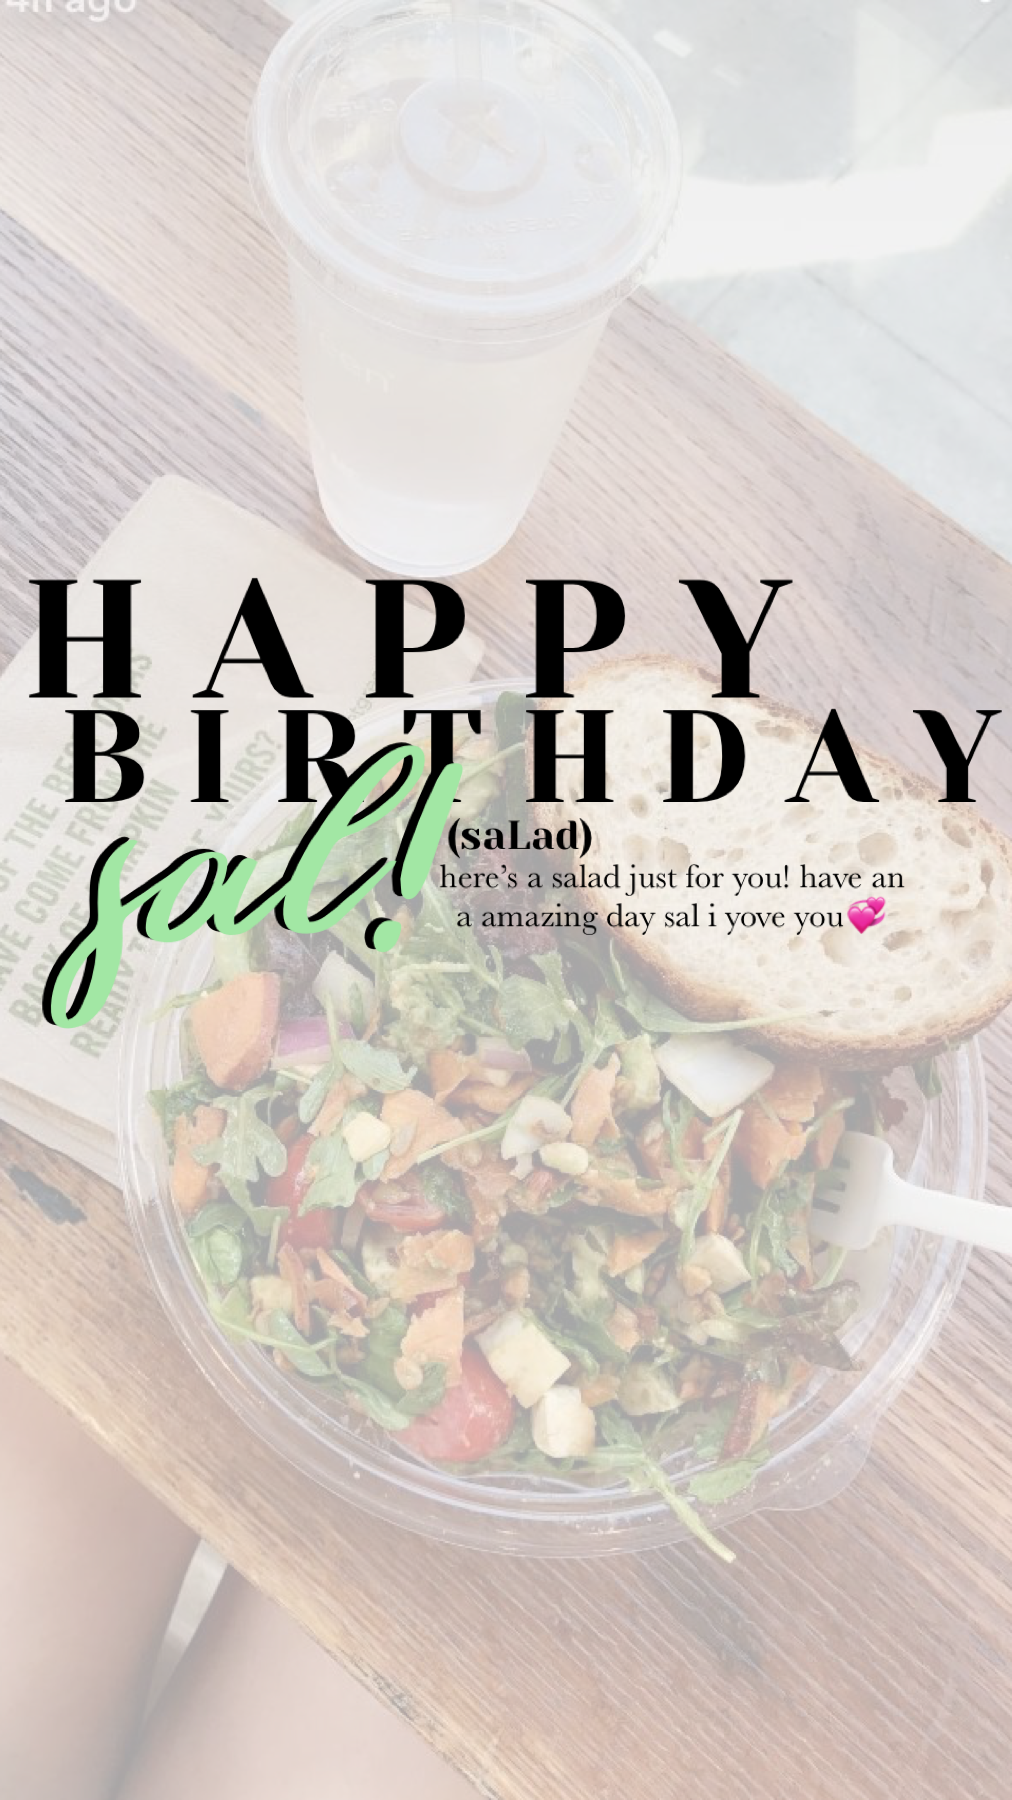 tap it's sal's birthday!! (POS1TIVE_V1BES)  happy birthday sal!! i yove you and i've always thought salad > tea🤩 anyways have the best day my dood.